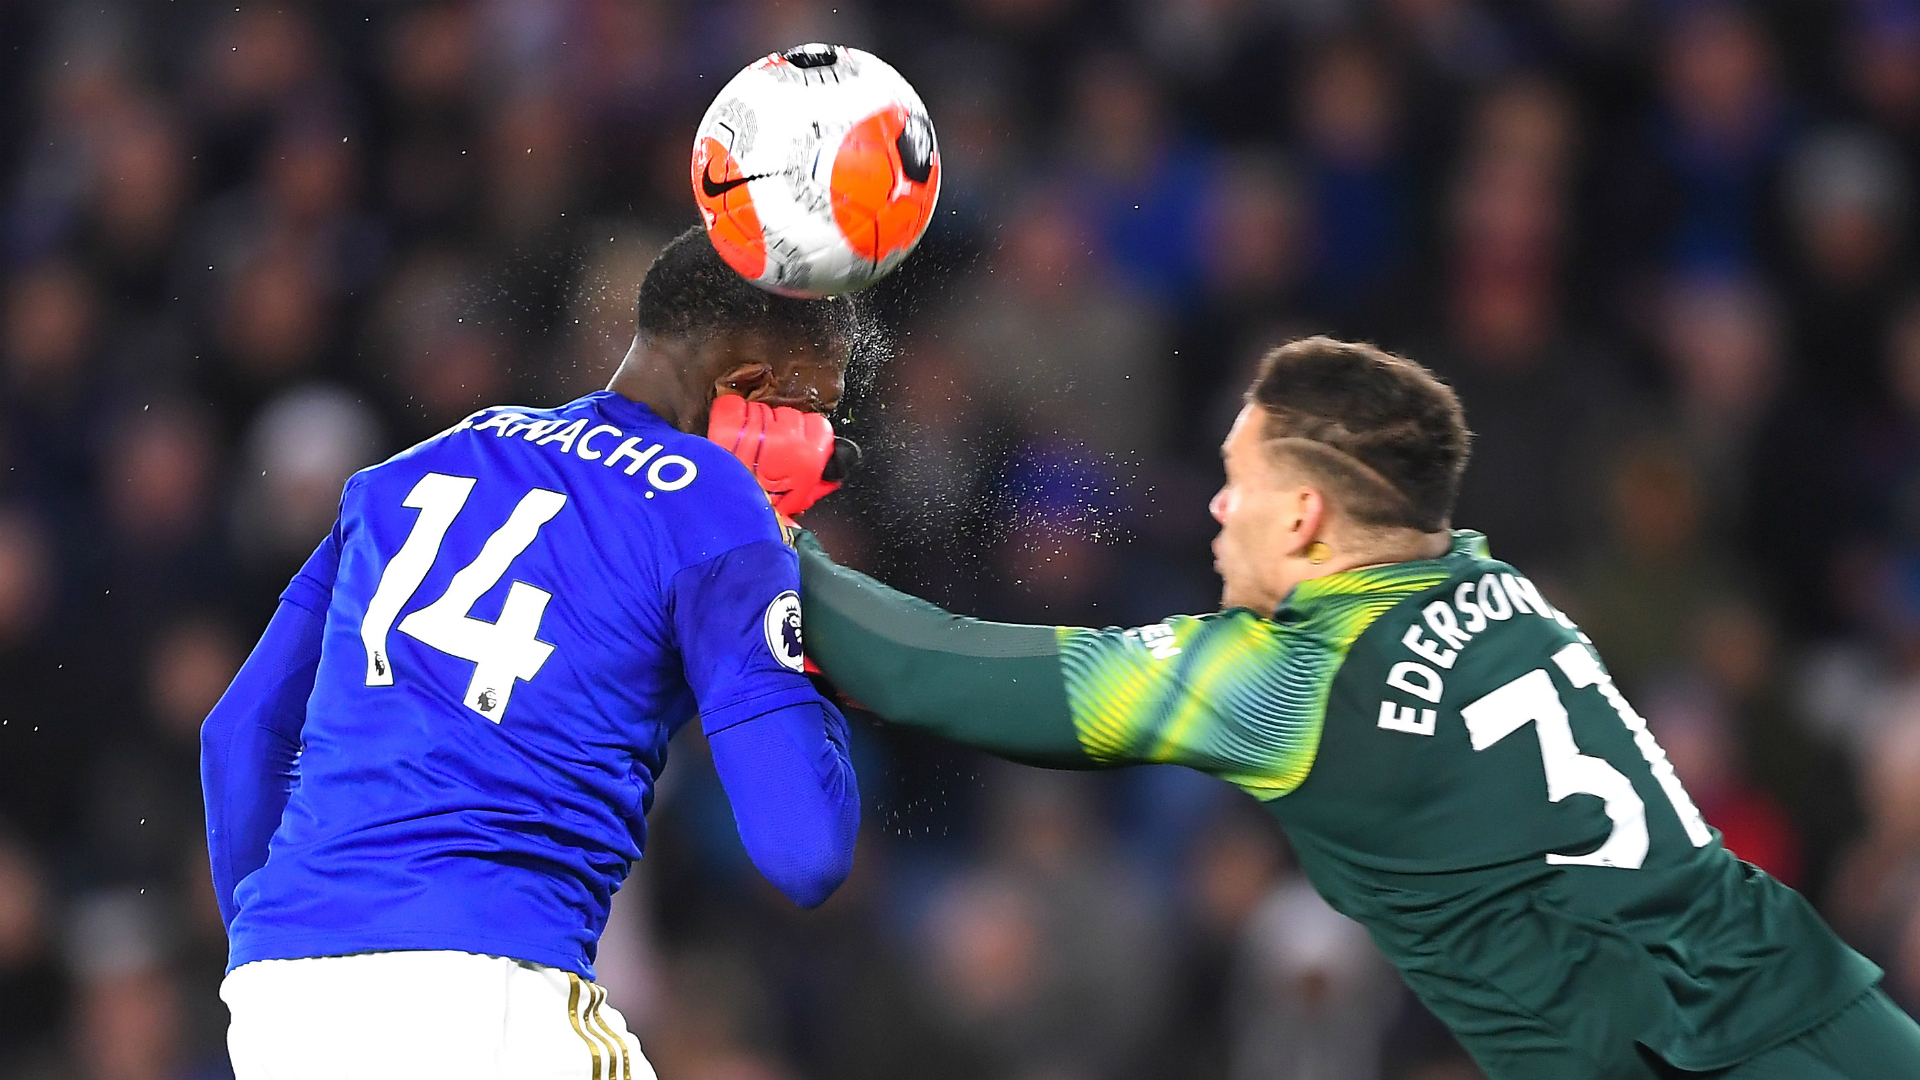 Leicester City boss Rodgers on Iheanacho's injury and substitution